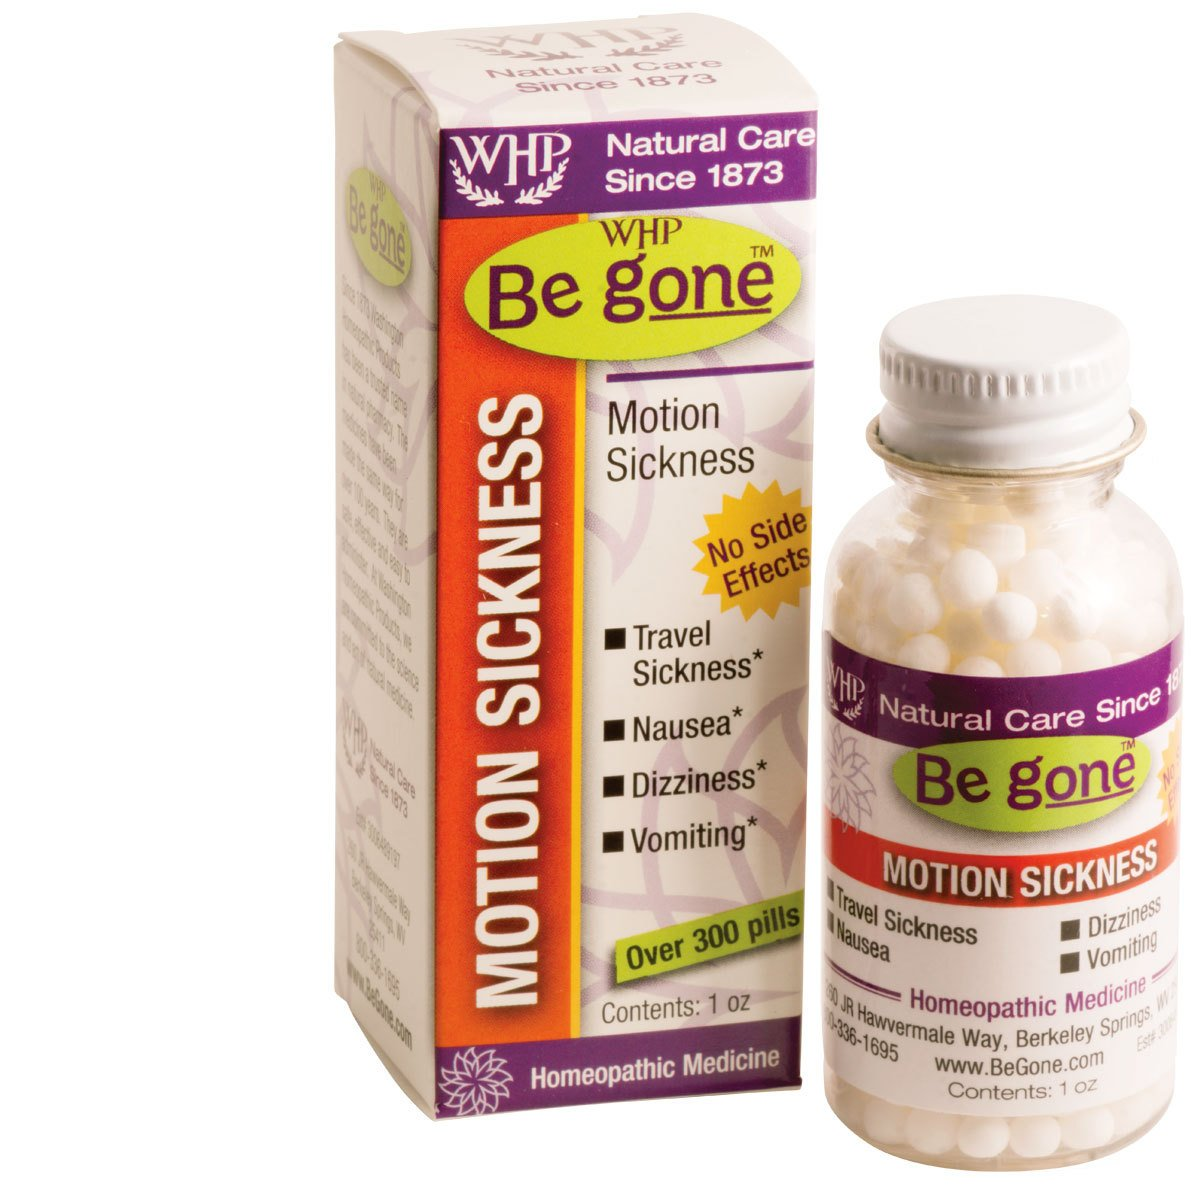 Be gone Motion Sickness